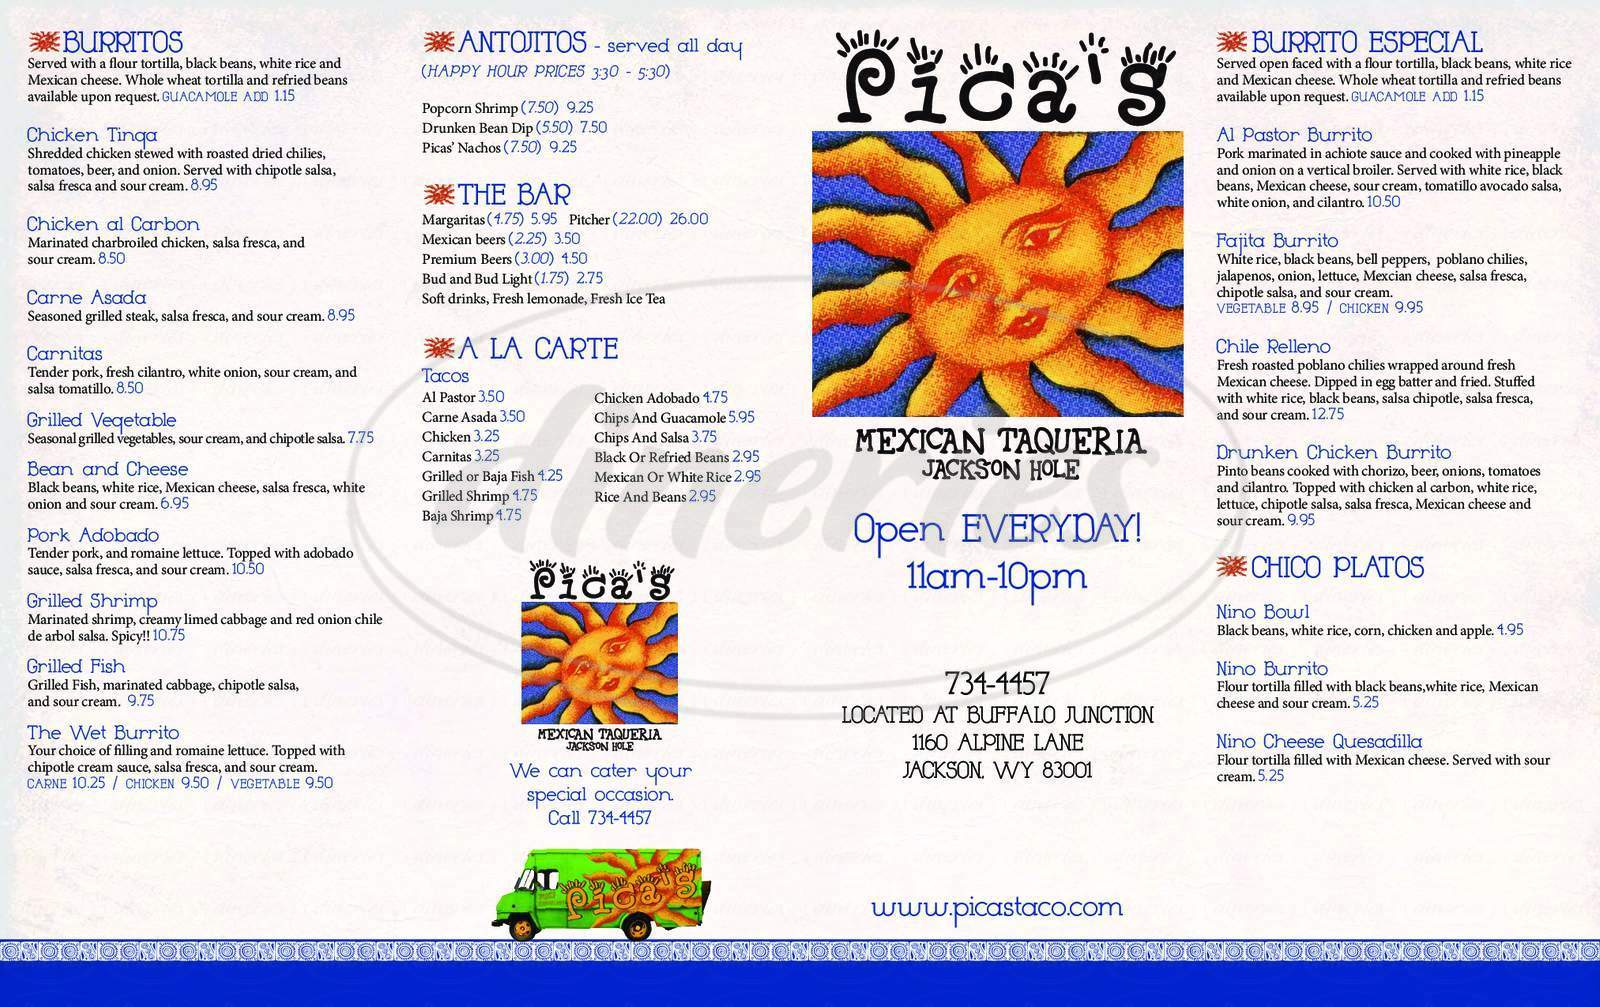 menu for Pica's Mexican Tanqueria